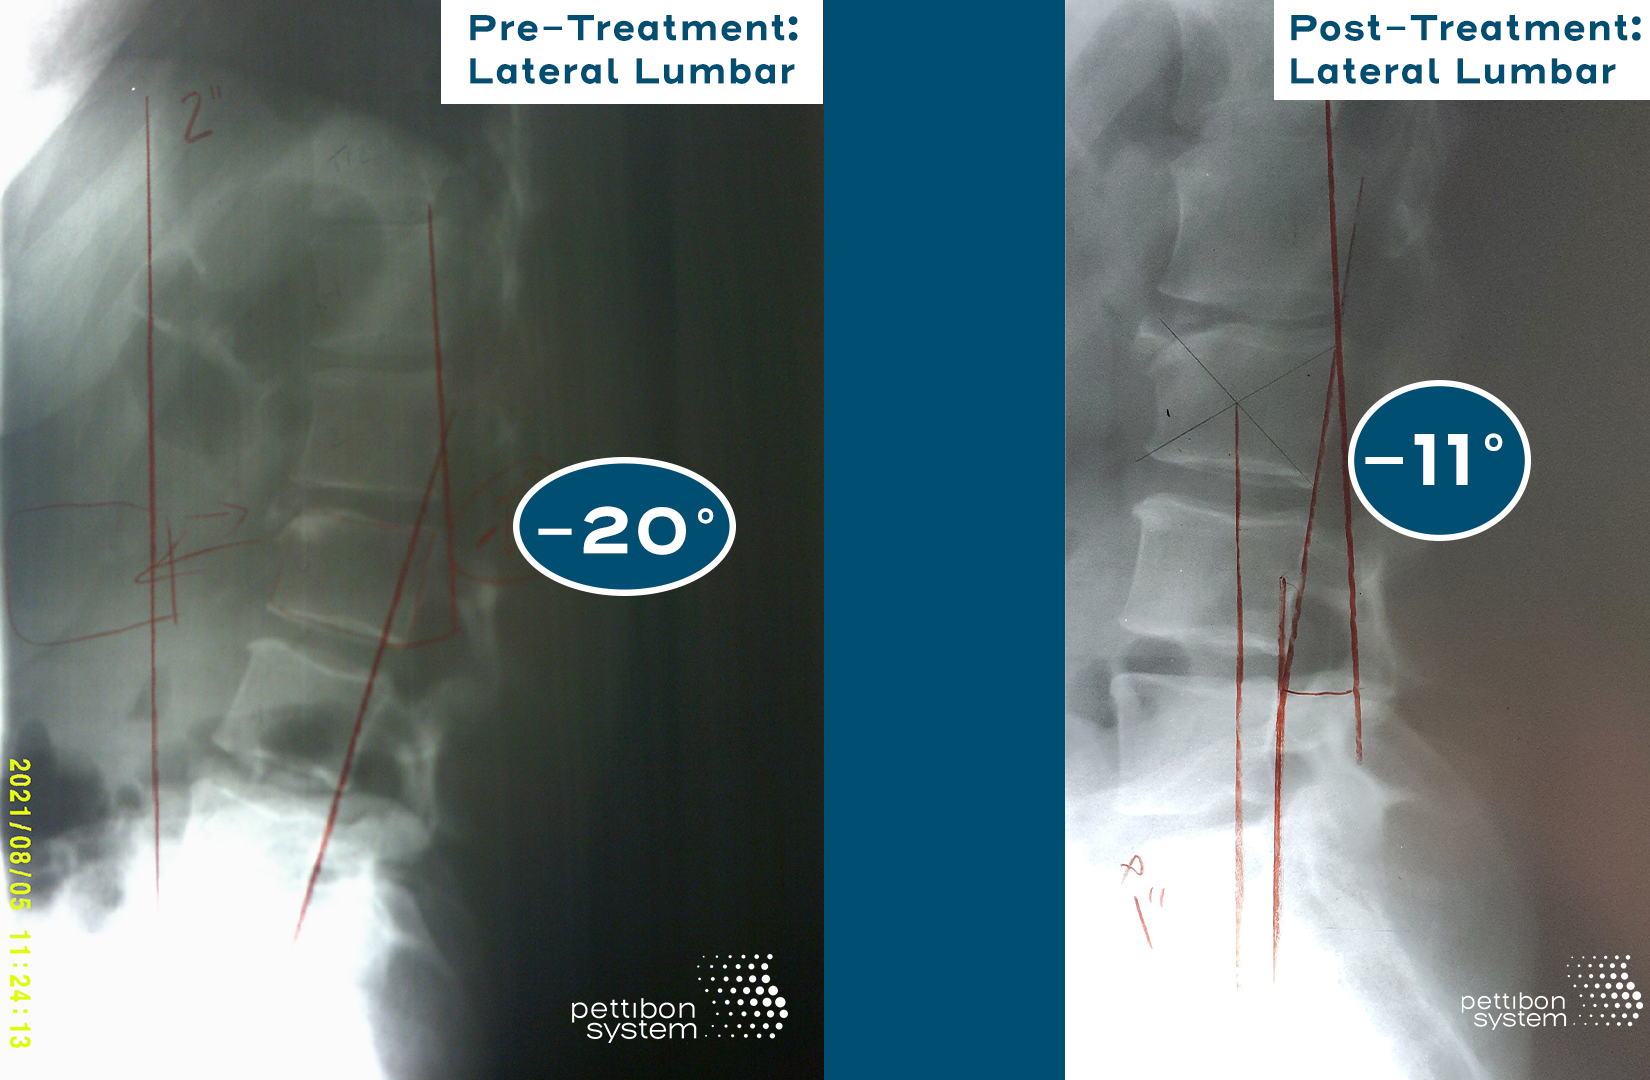 Side by side X-rays showing the improvement of Lisa's spine after using The Pettibon System.